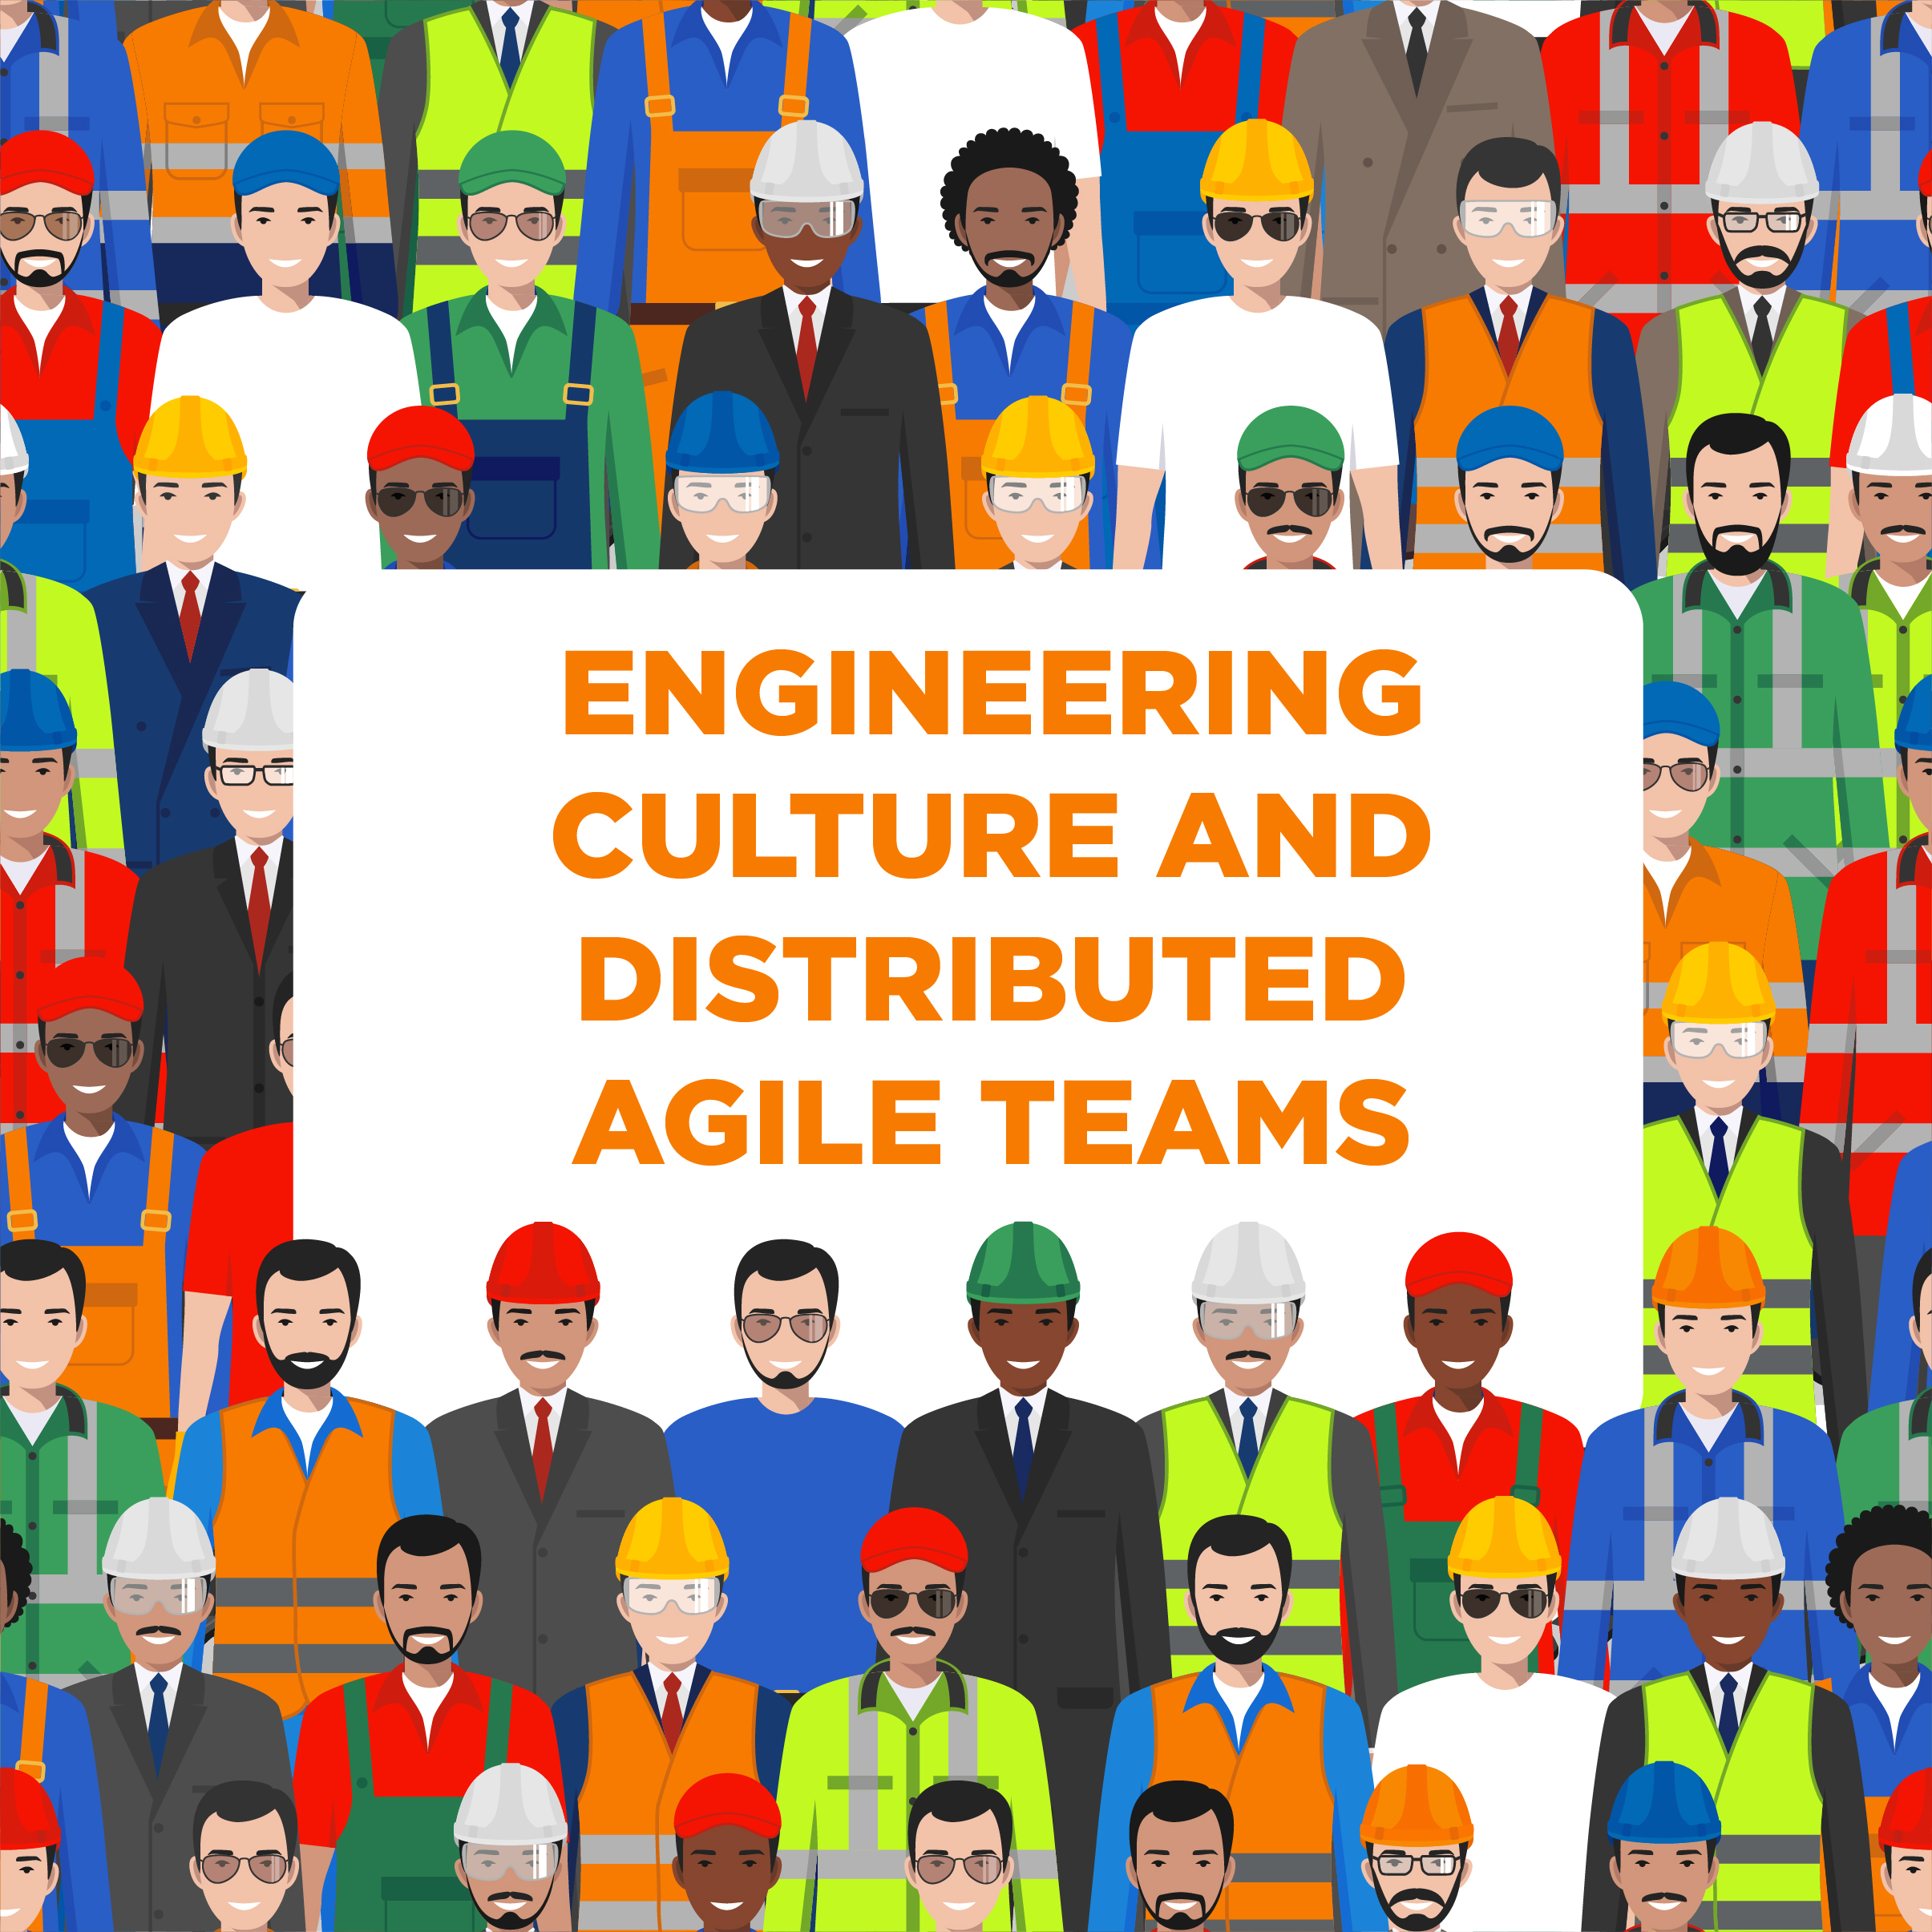 Engineering culture and distributed agile teams urtaz Image collections